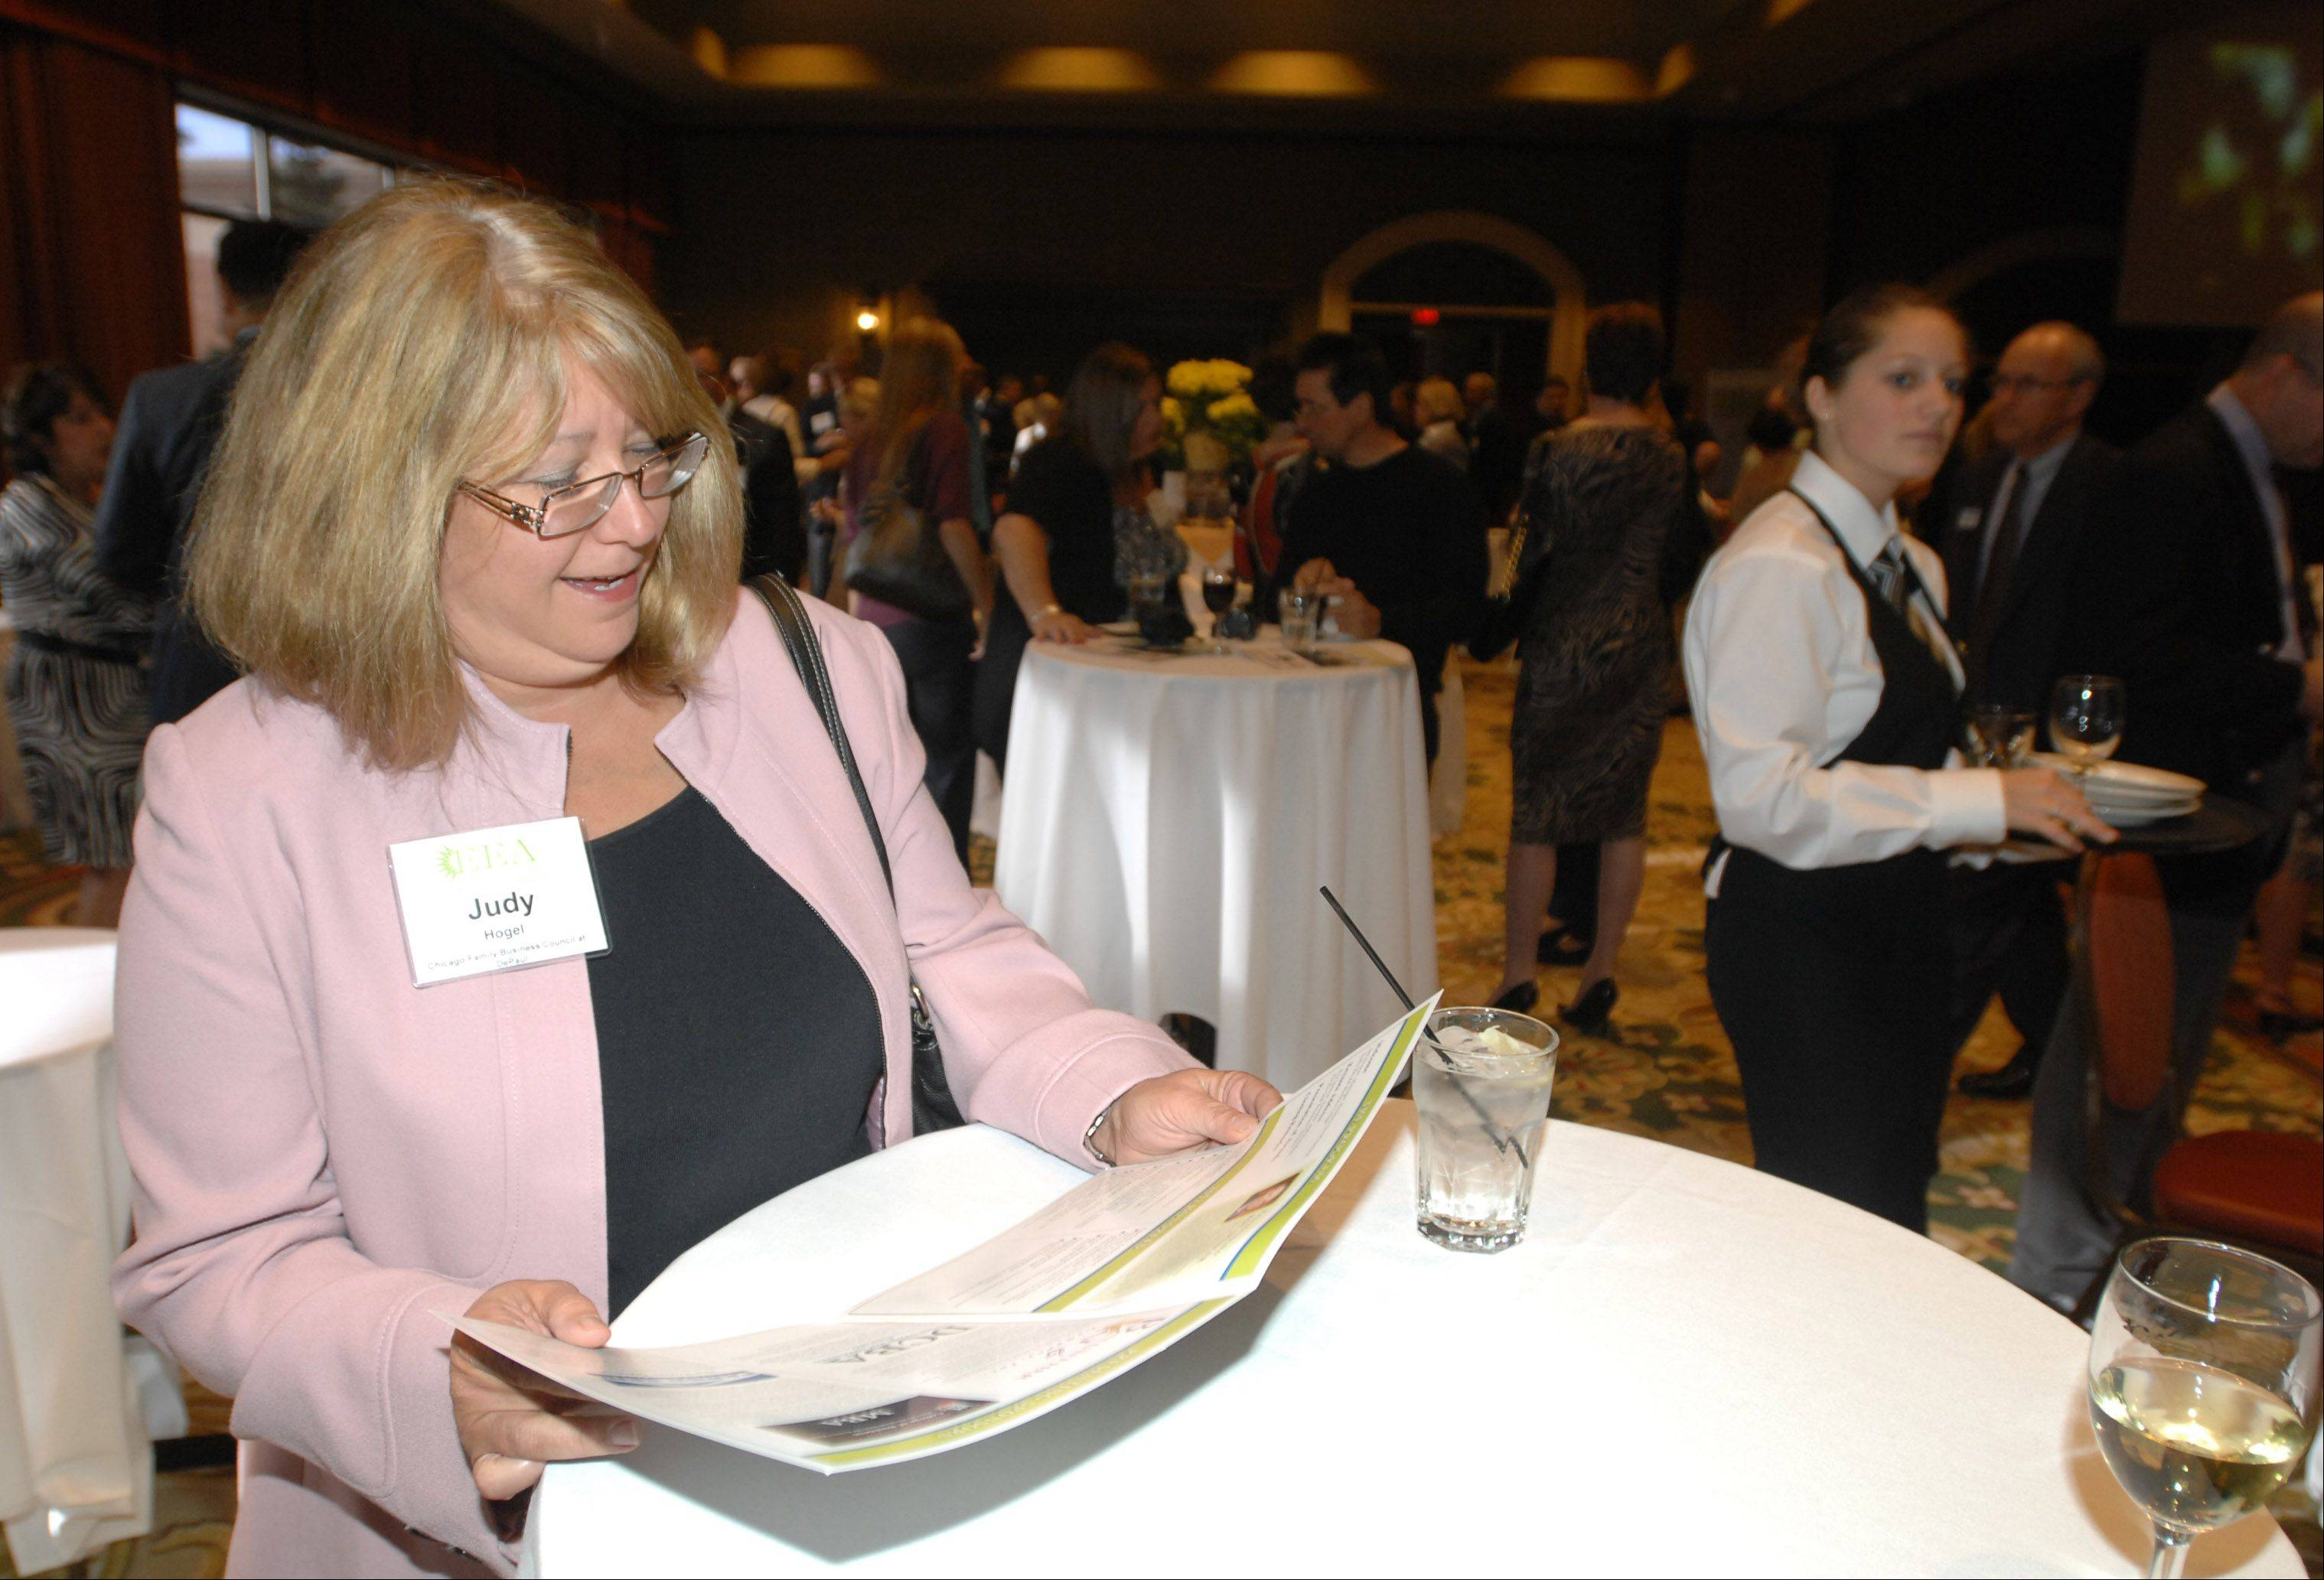 Judy Hogel looks over the program at the 13th Annual Entrepreneurial Excellence Awards at Medinah Banquets in Addison Thursday.